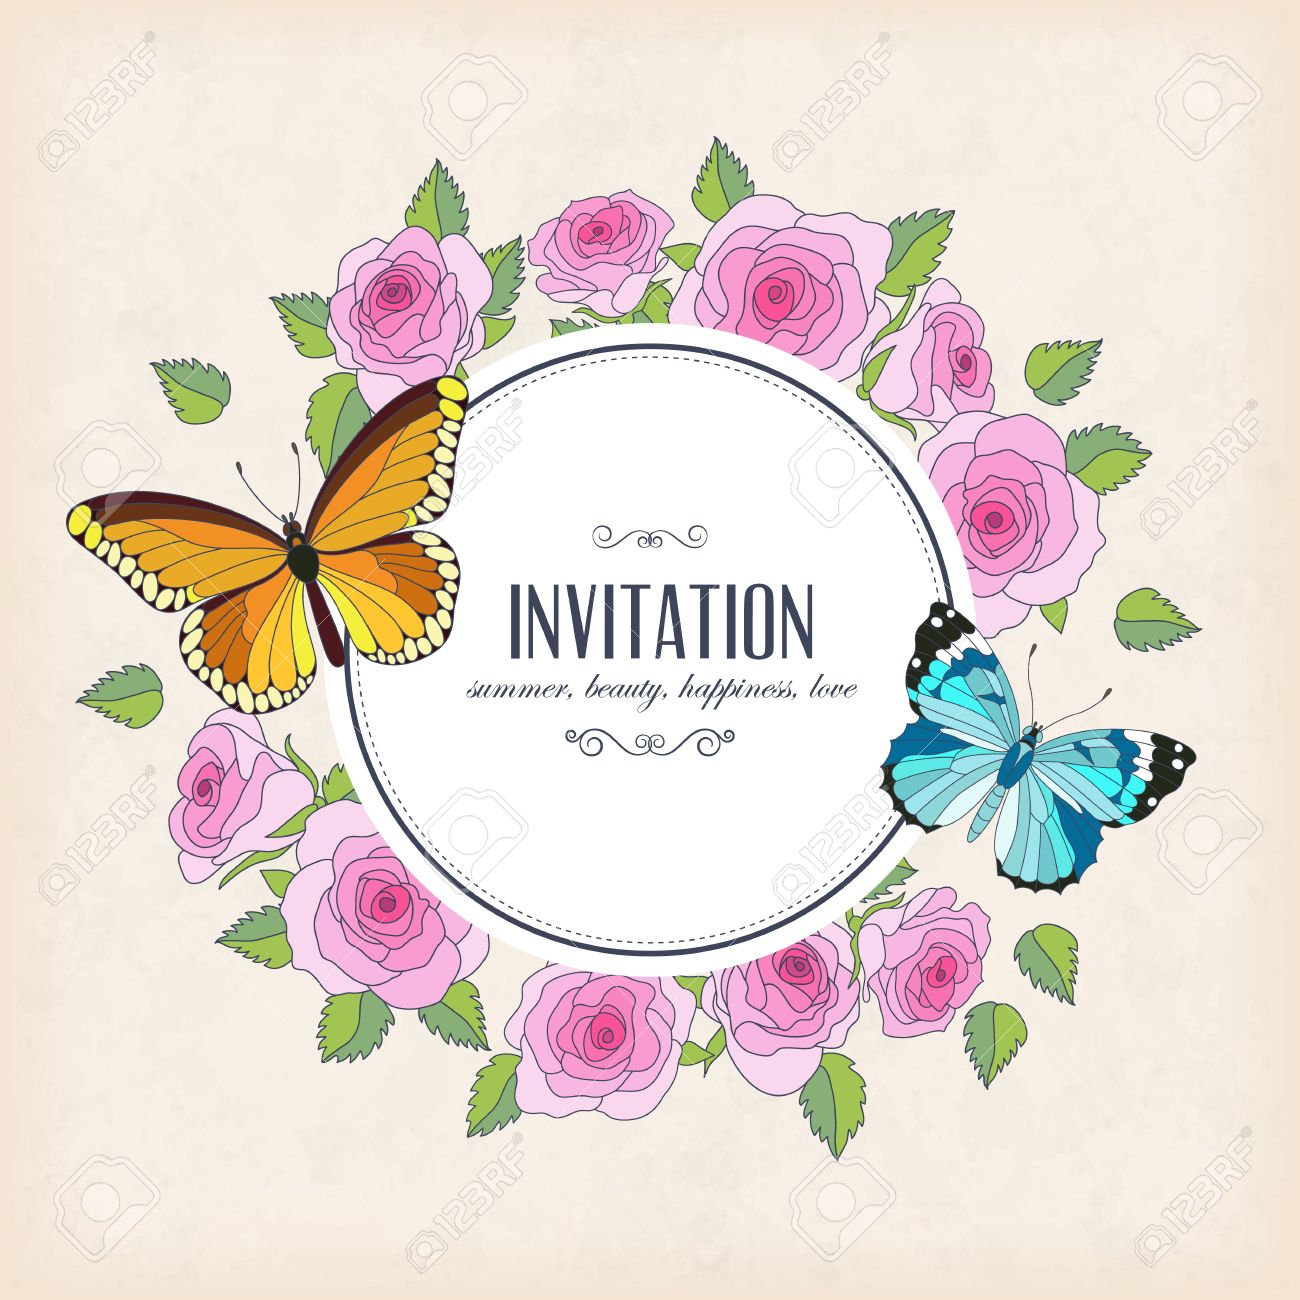 Vector Invitation Card With Butterflies And Roses Round Frame